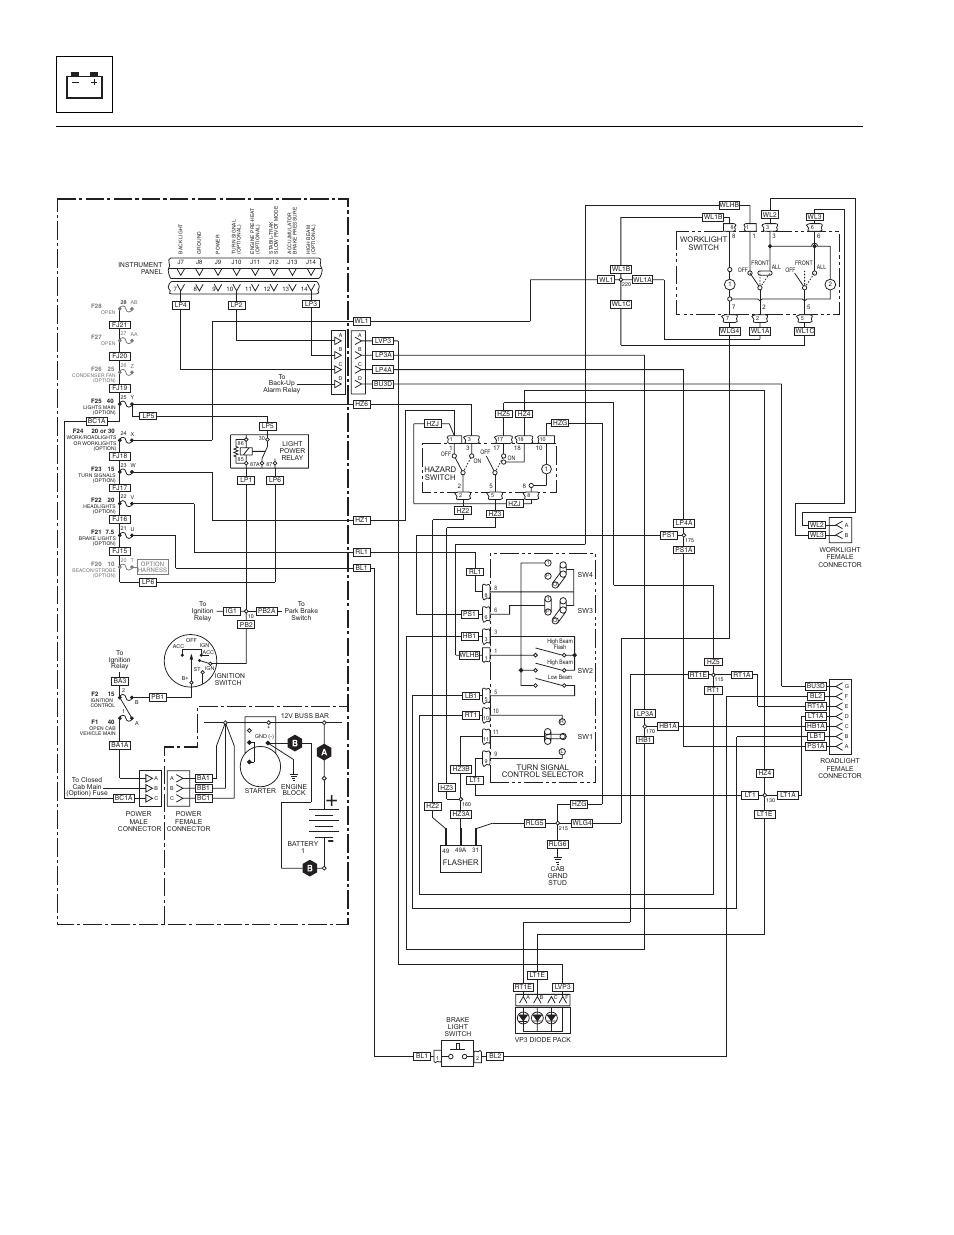 🏆 [diagram in pictures database] 844c lull wiring diagram just download or  read wiring diagram - bill.pierce.design.onyxum.com  complete diagram picture database - onyxum.com